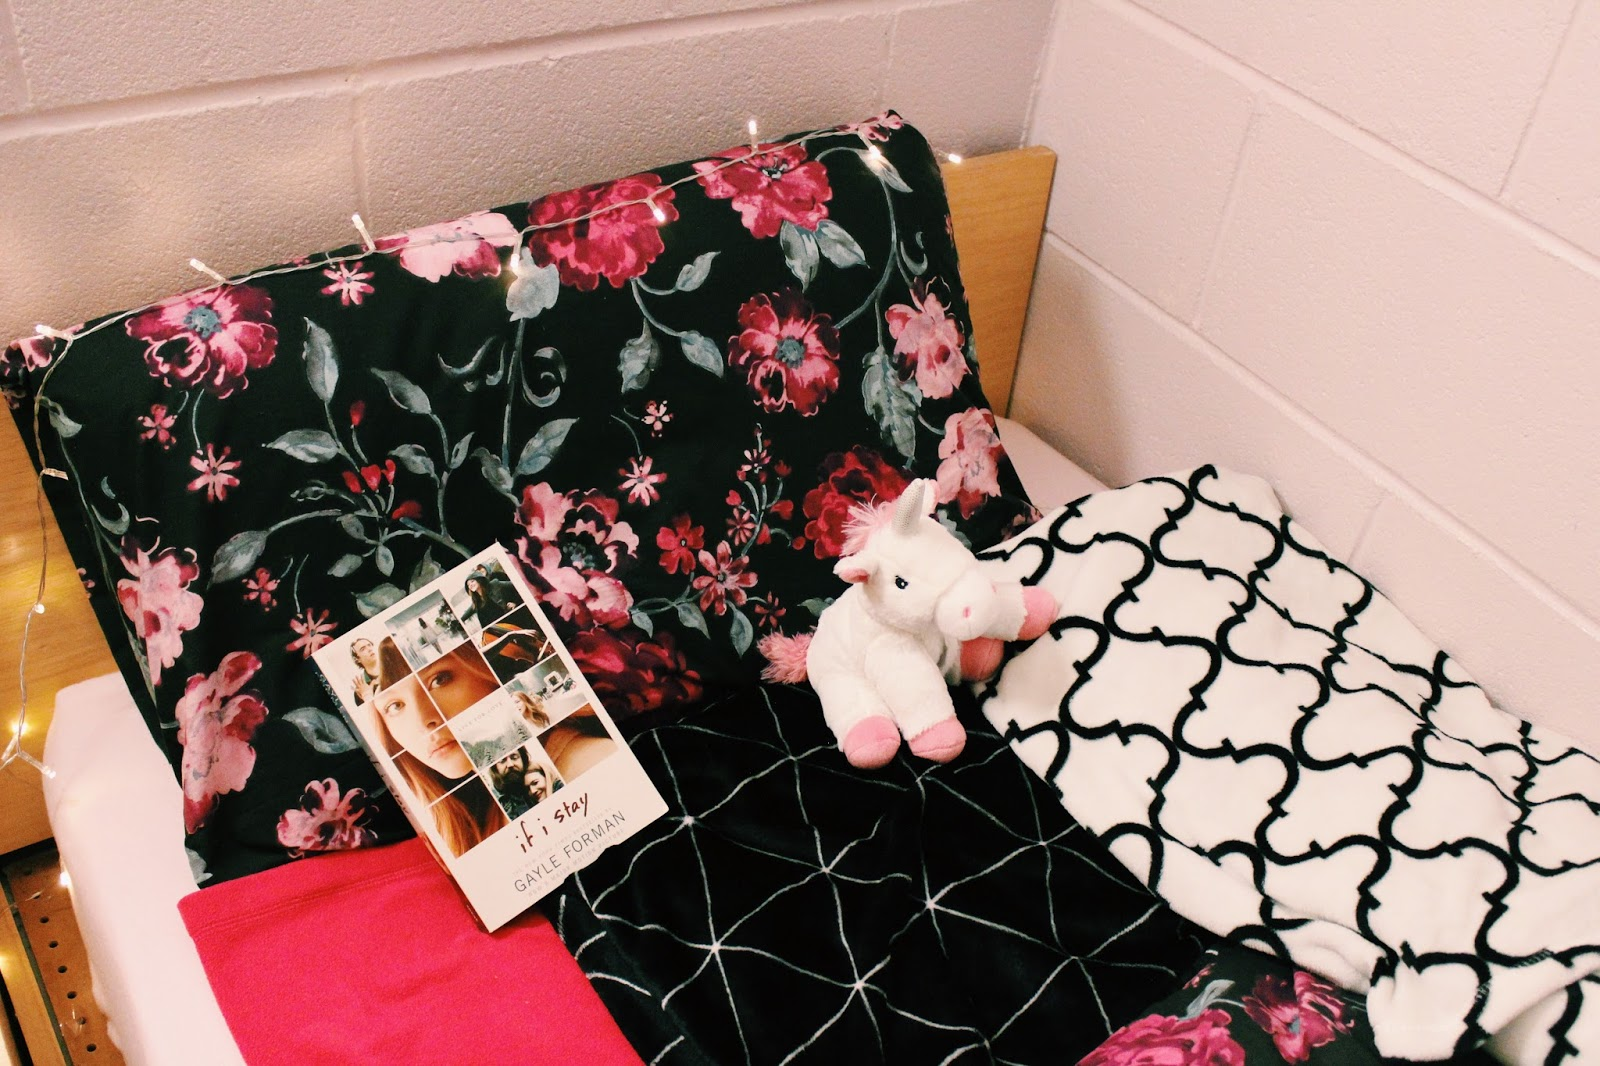 Primark Duvet Covers and Blankets